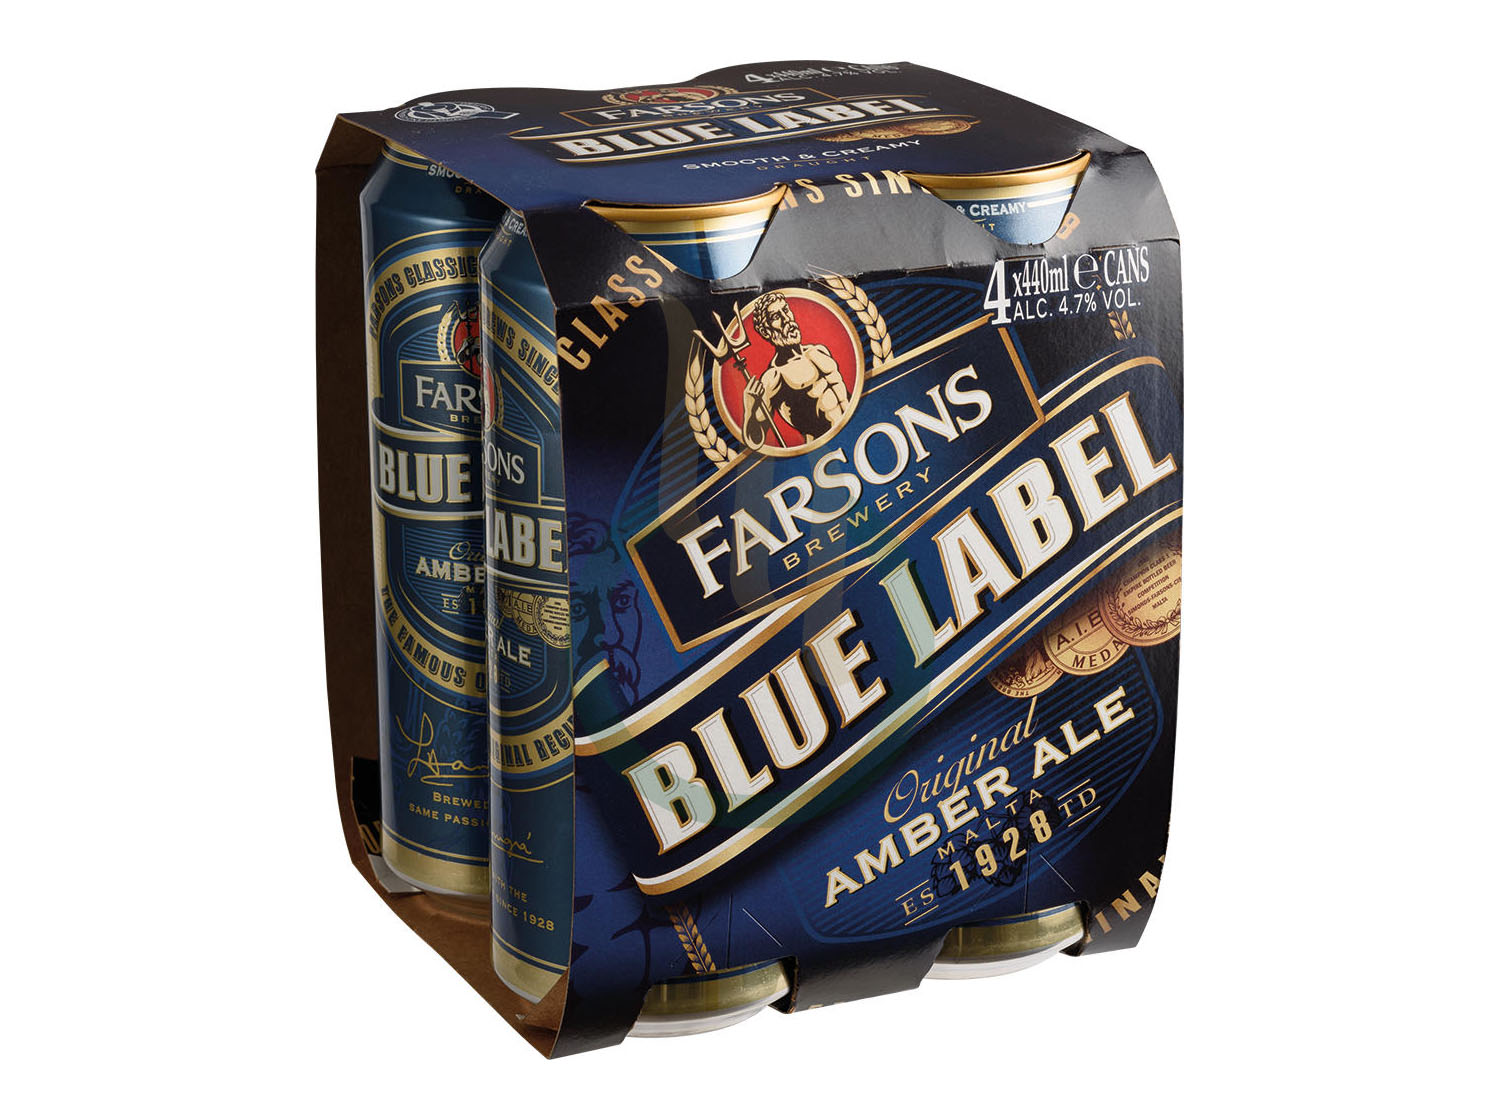 BLUE LABEL CAN X4